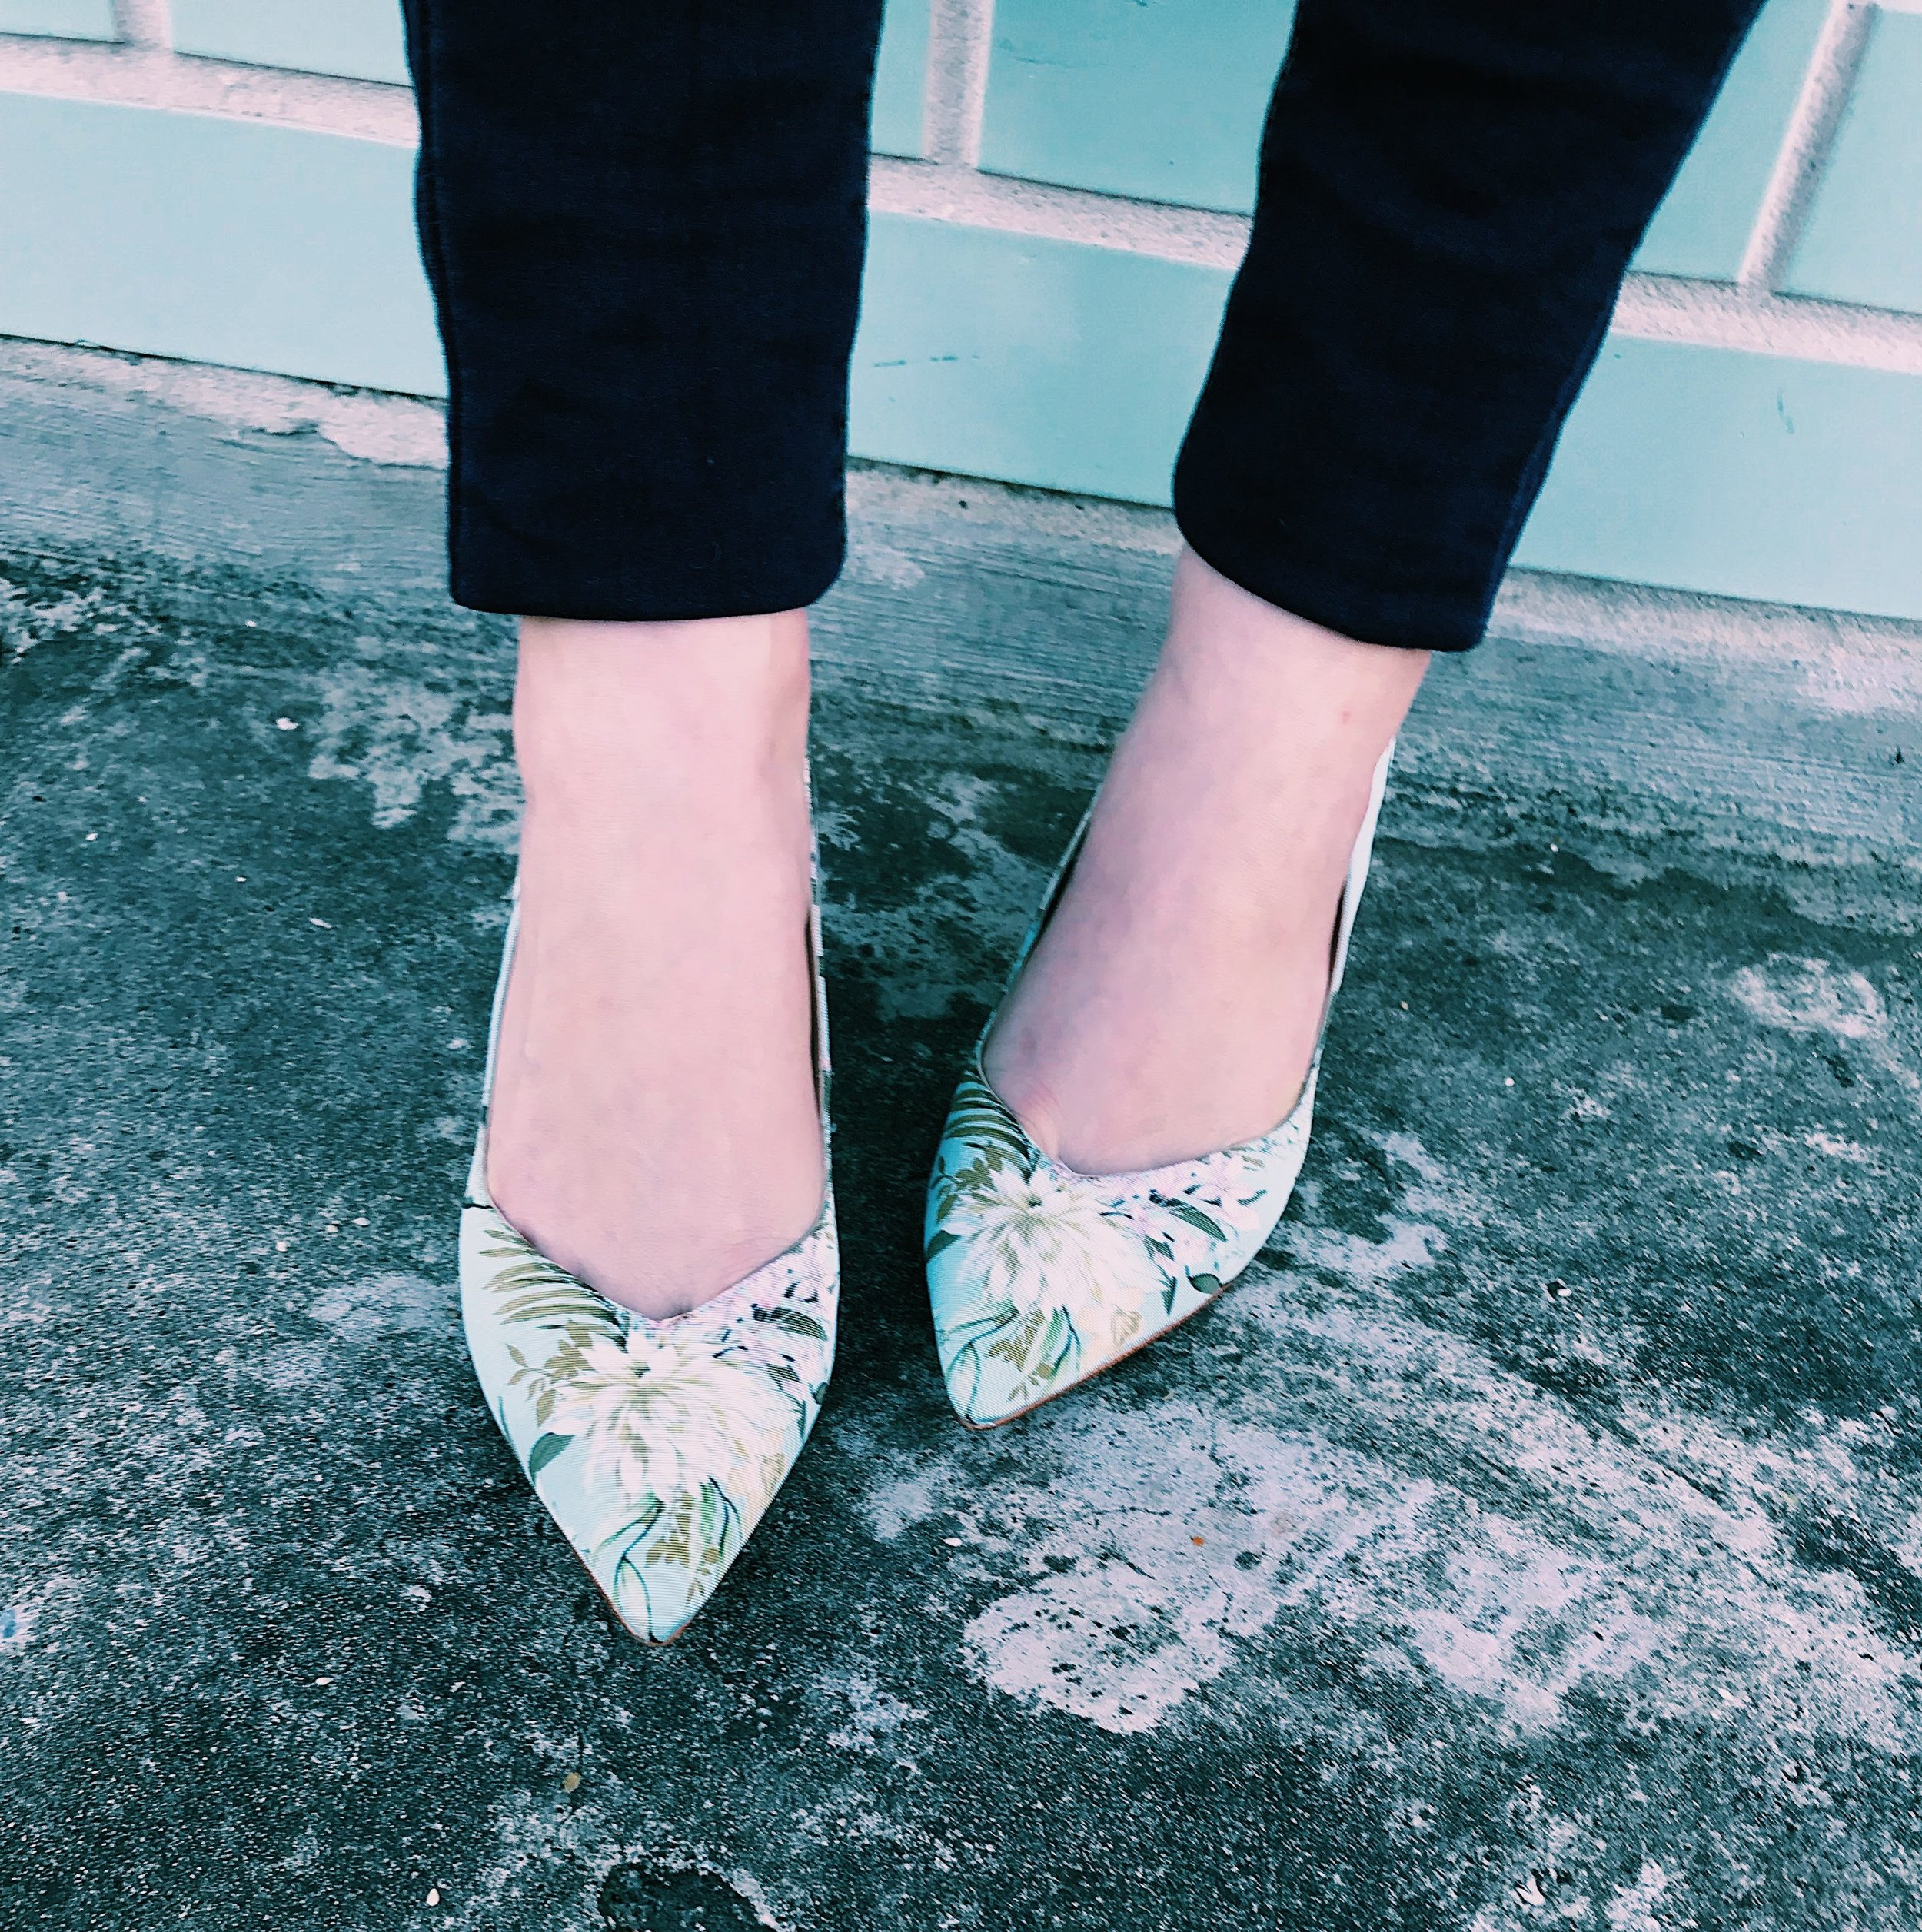 Three Heel Clicks - Trend to Watch - Floral Shoes for Spring (6).jpg